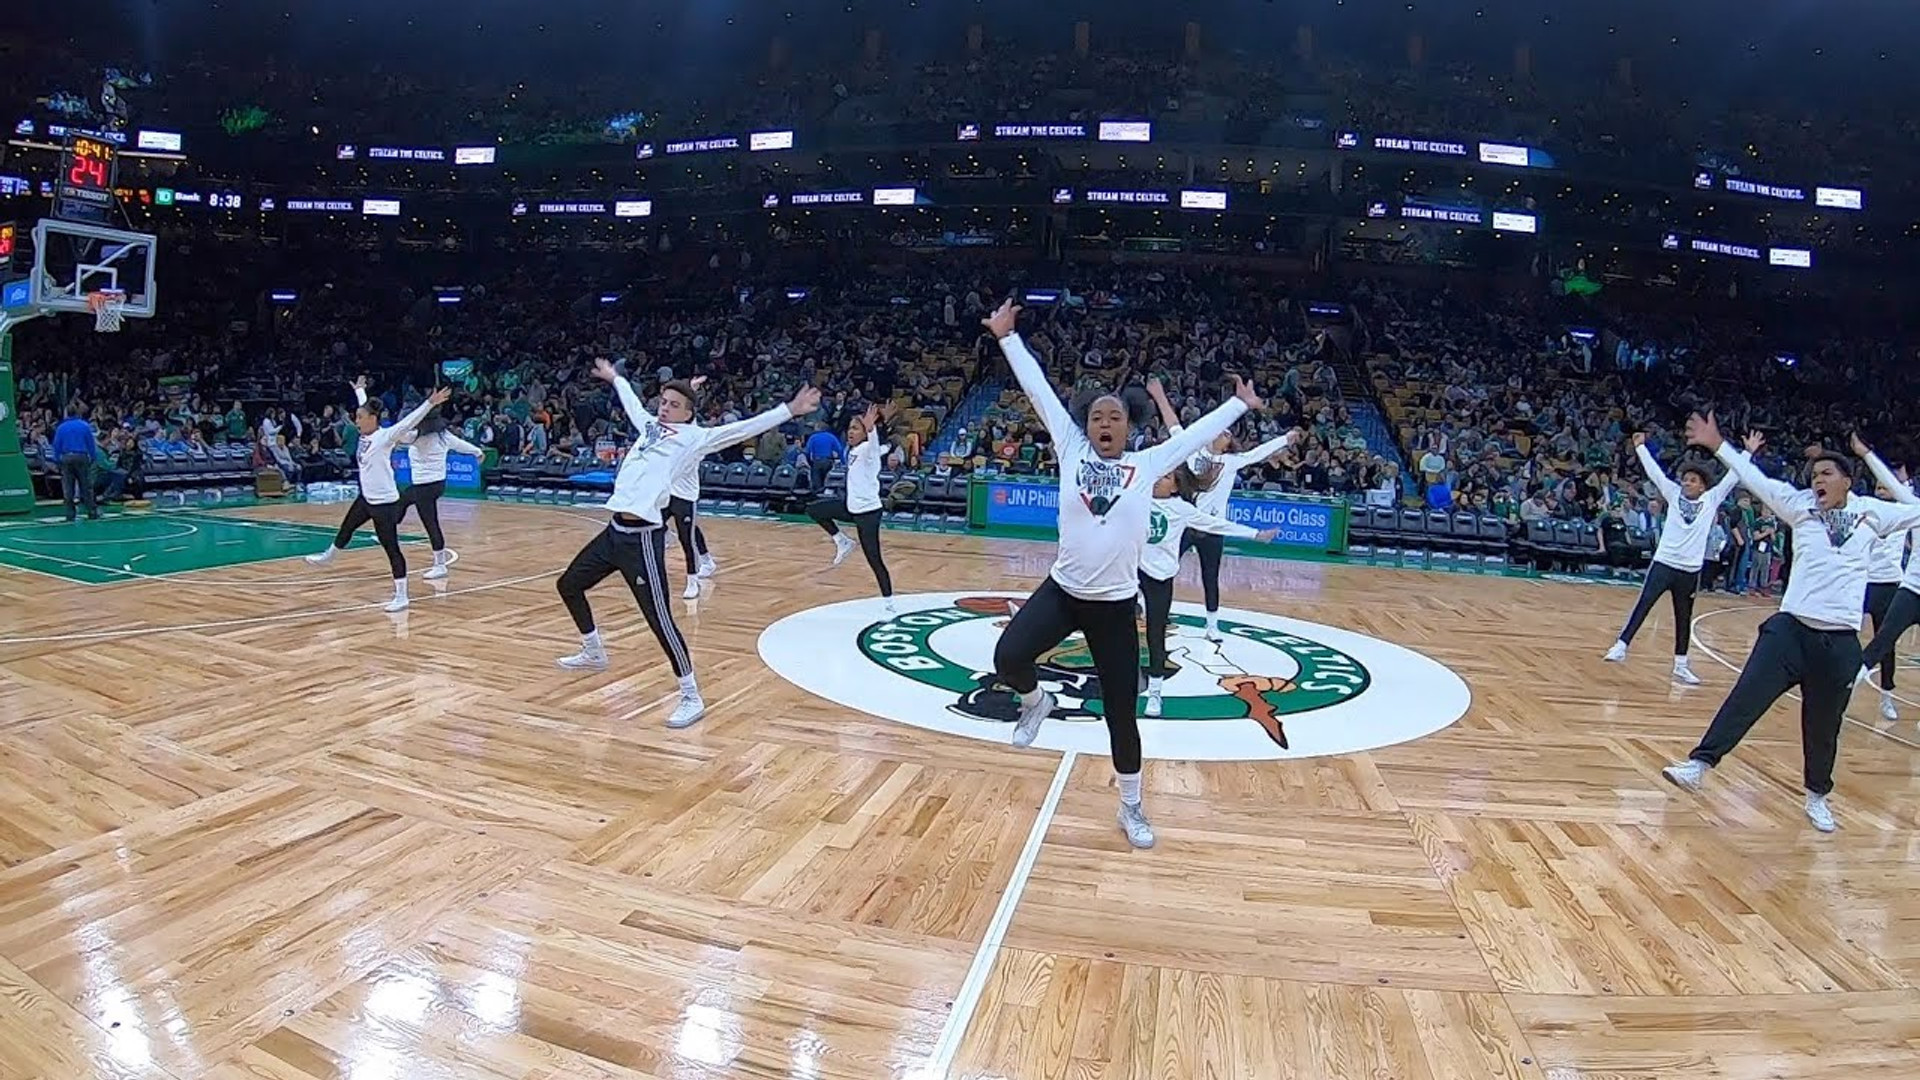 Boston Celtics Dance Performance